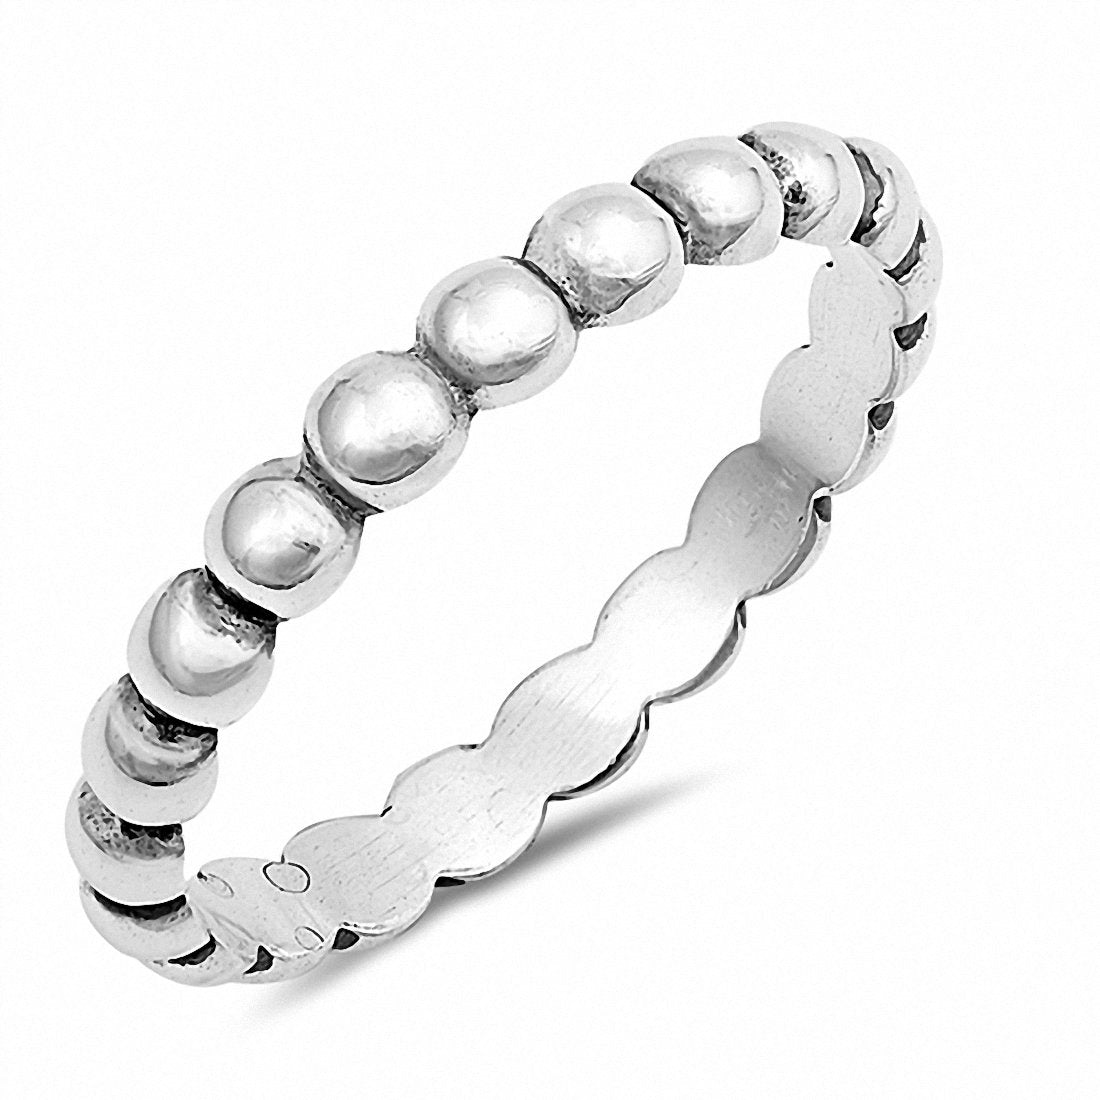 3mm Bead Band Ring 925 Sterling Silver Choose Color